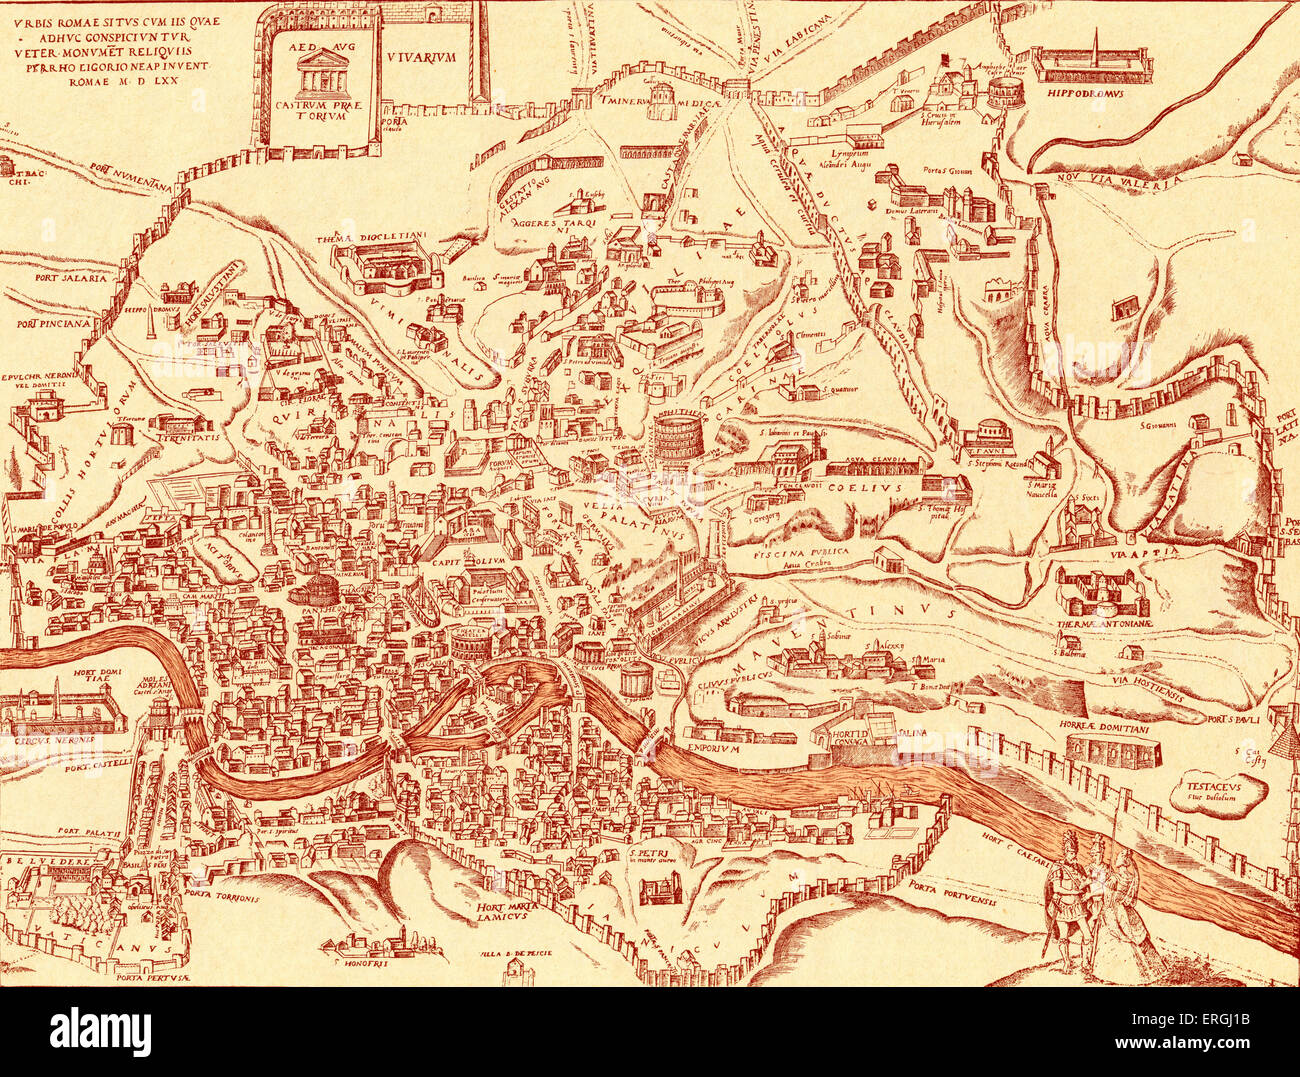 Map Of City Of Rome And Its Ancient Monuments